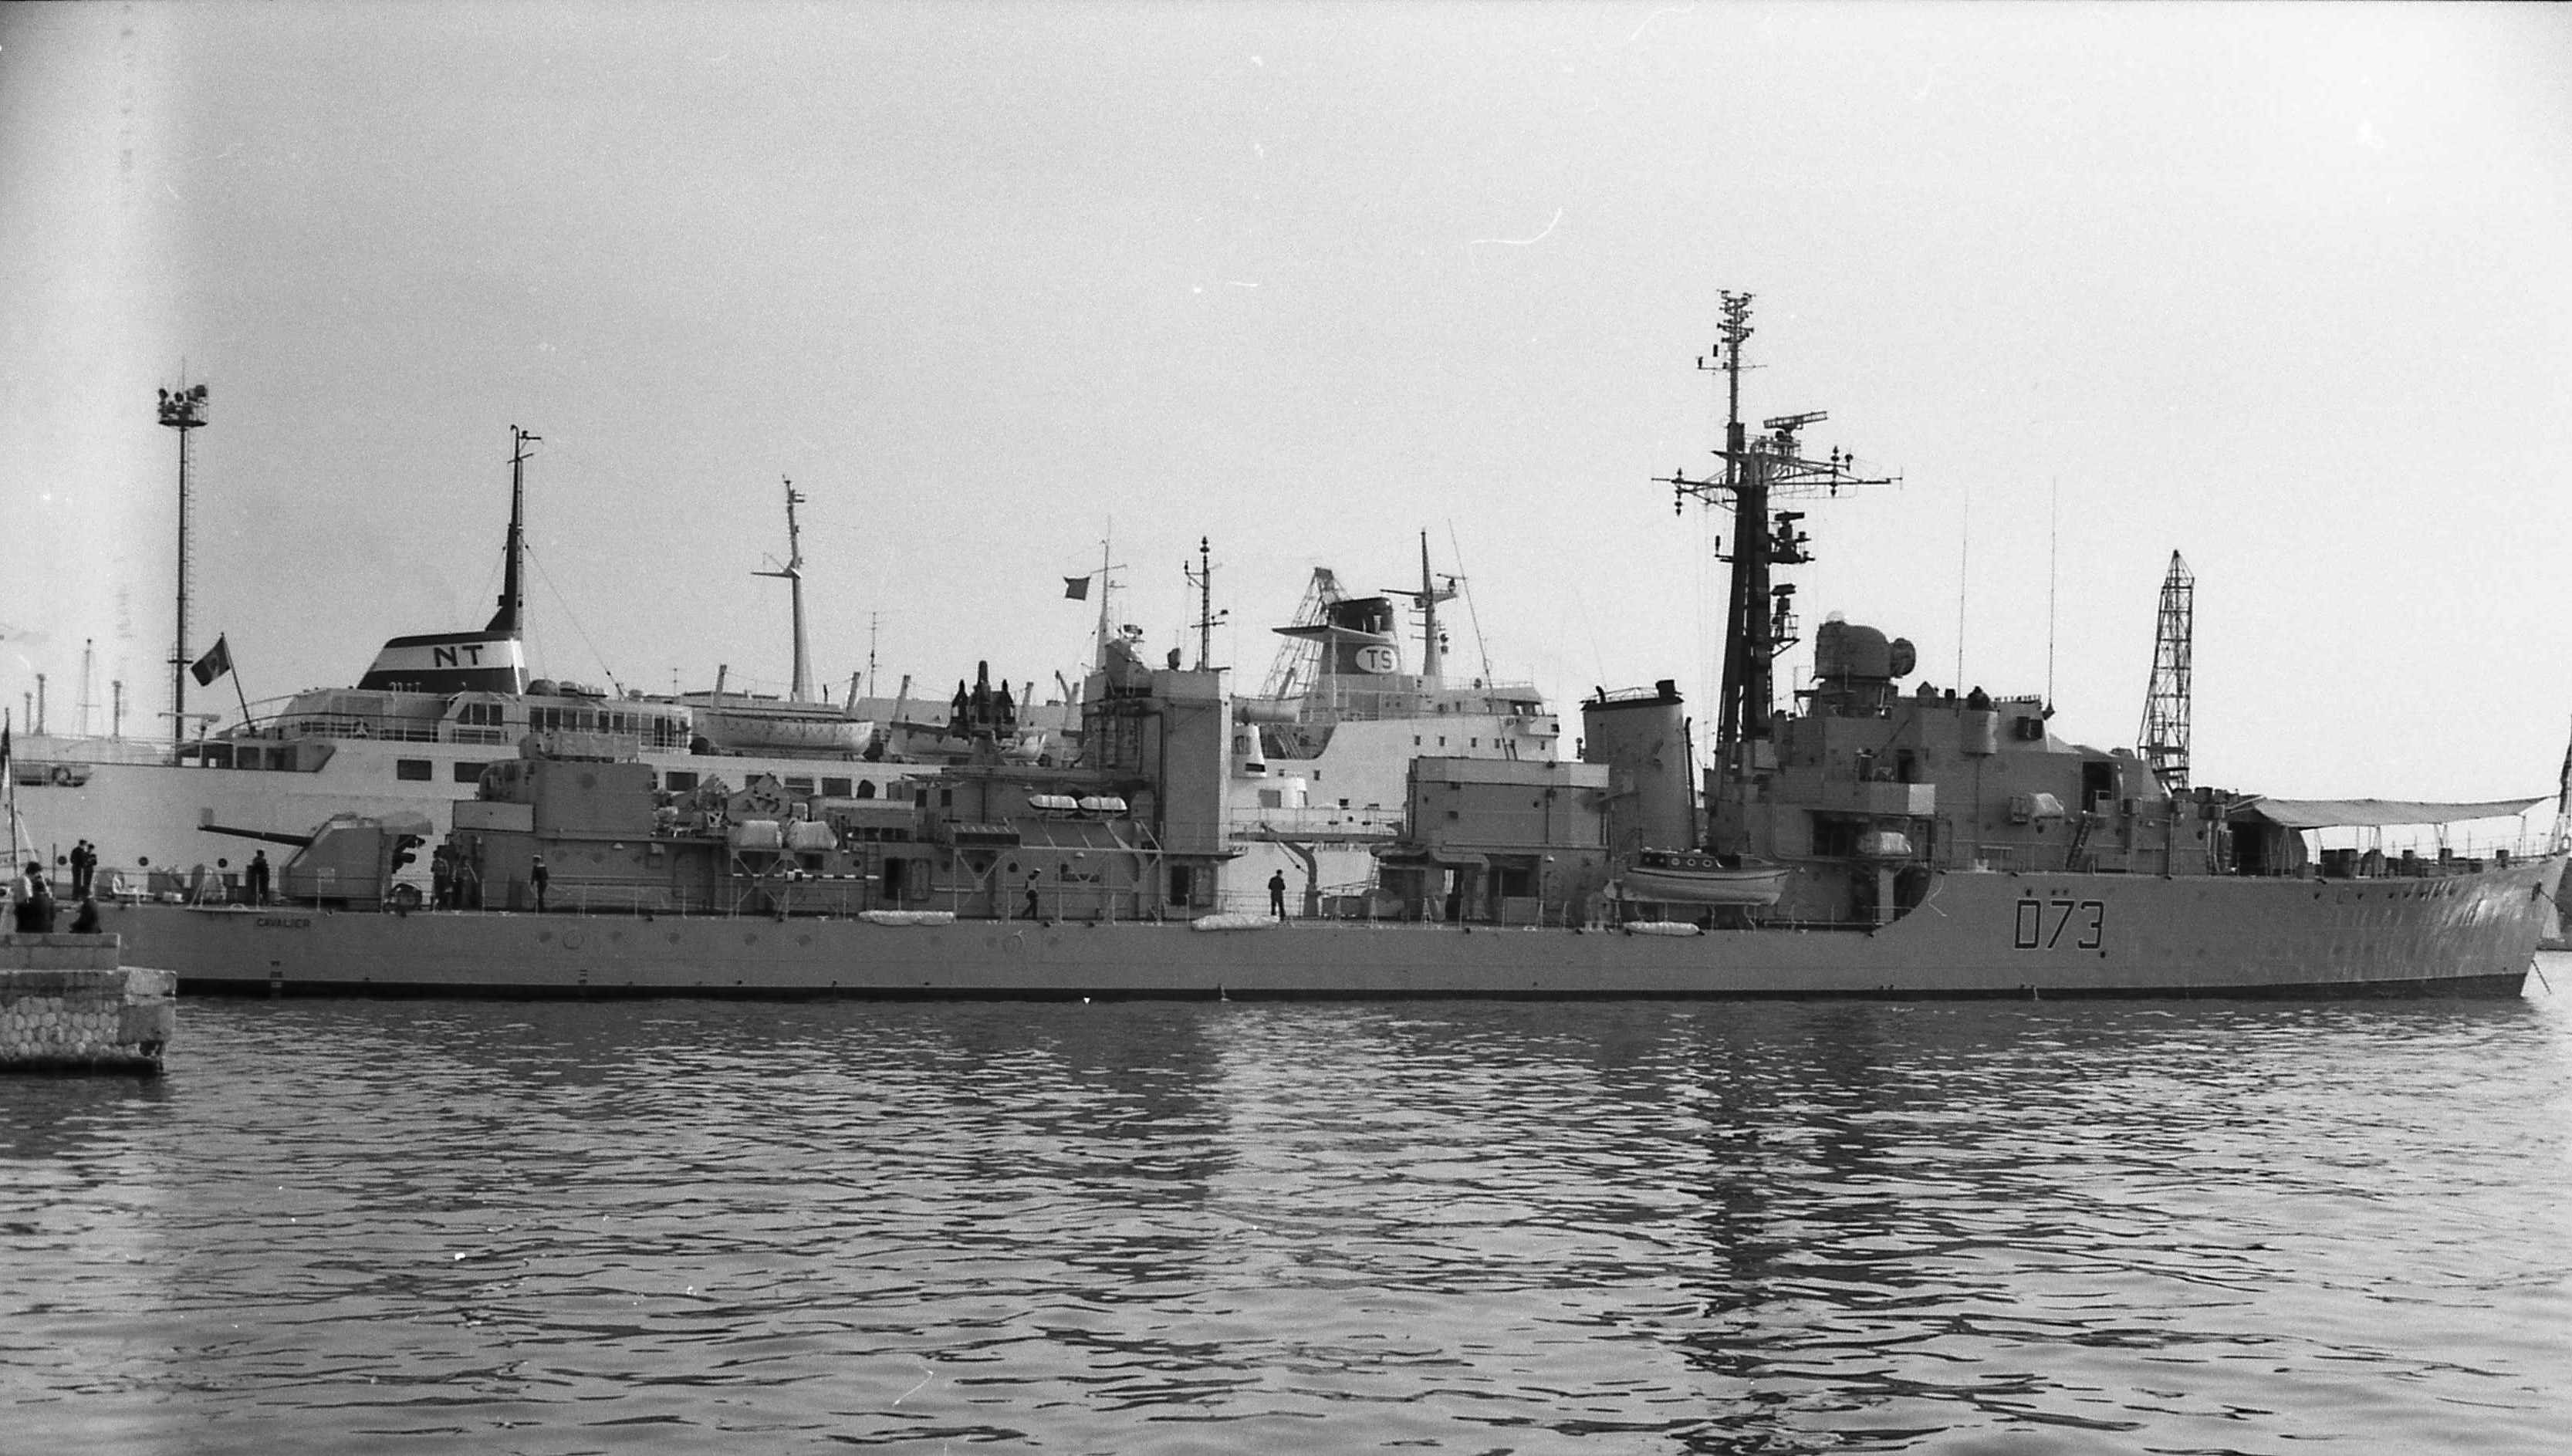 HMS Cavalier during the Second World War